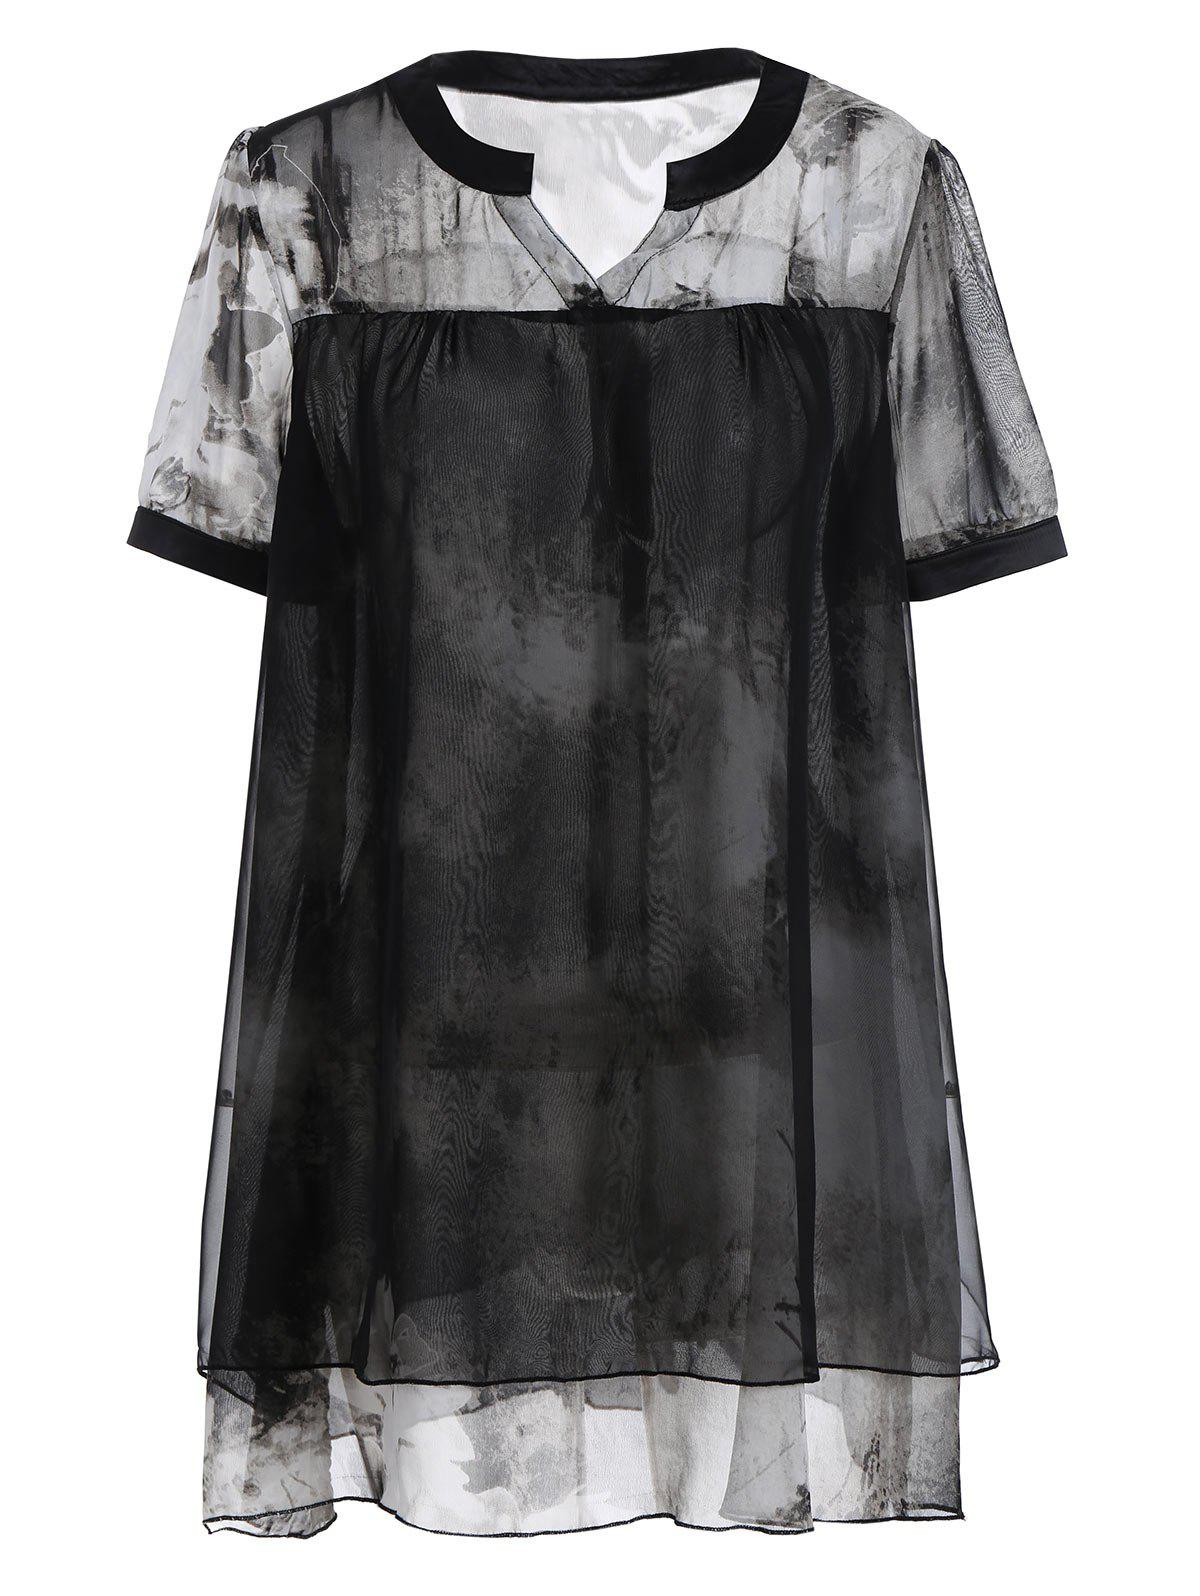 Plus Size Layered Tie Dye Chiffon Swing Top pearl detail layered frill sleeve top